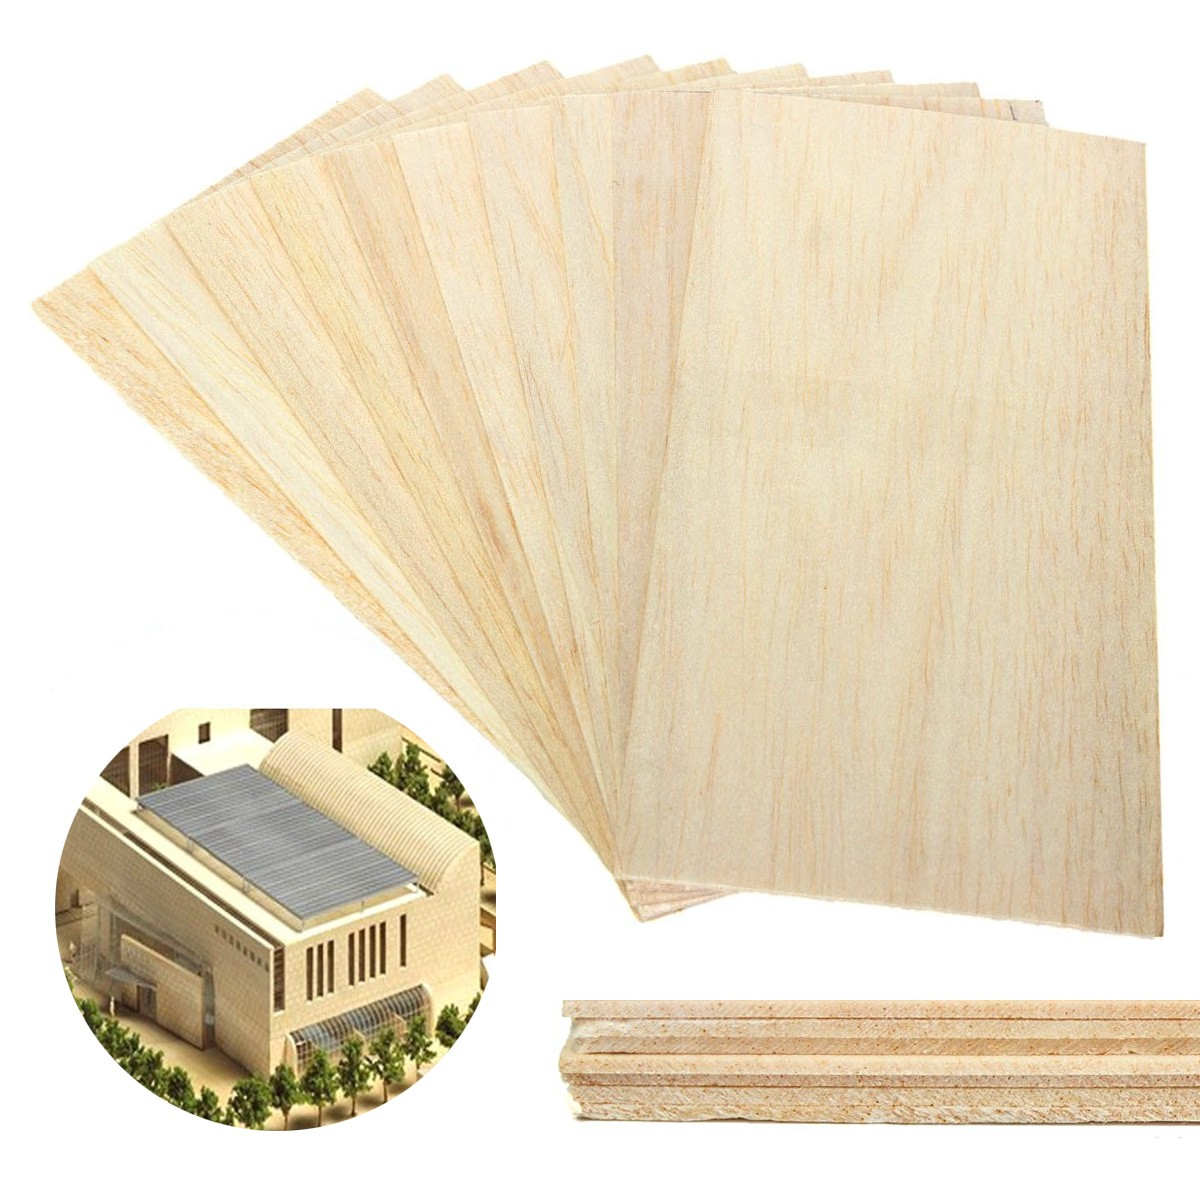 200x100x1.5mm 10Pcs Balsa Wooden Sheet Light Wood Plate DIY Model House Aircraft Ship